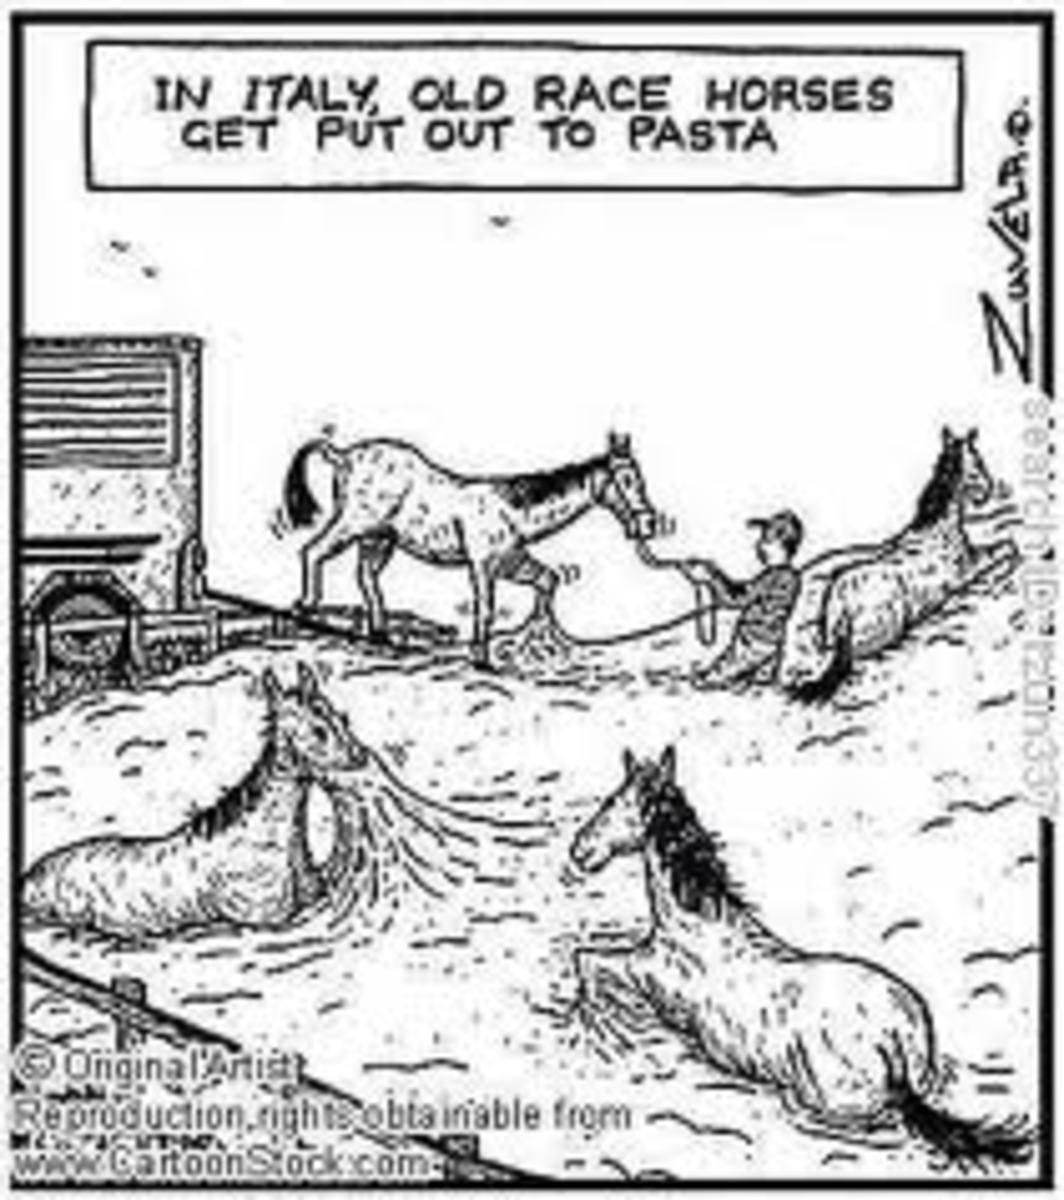 horse-facts